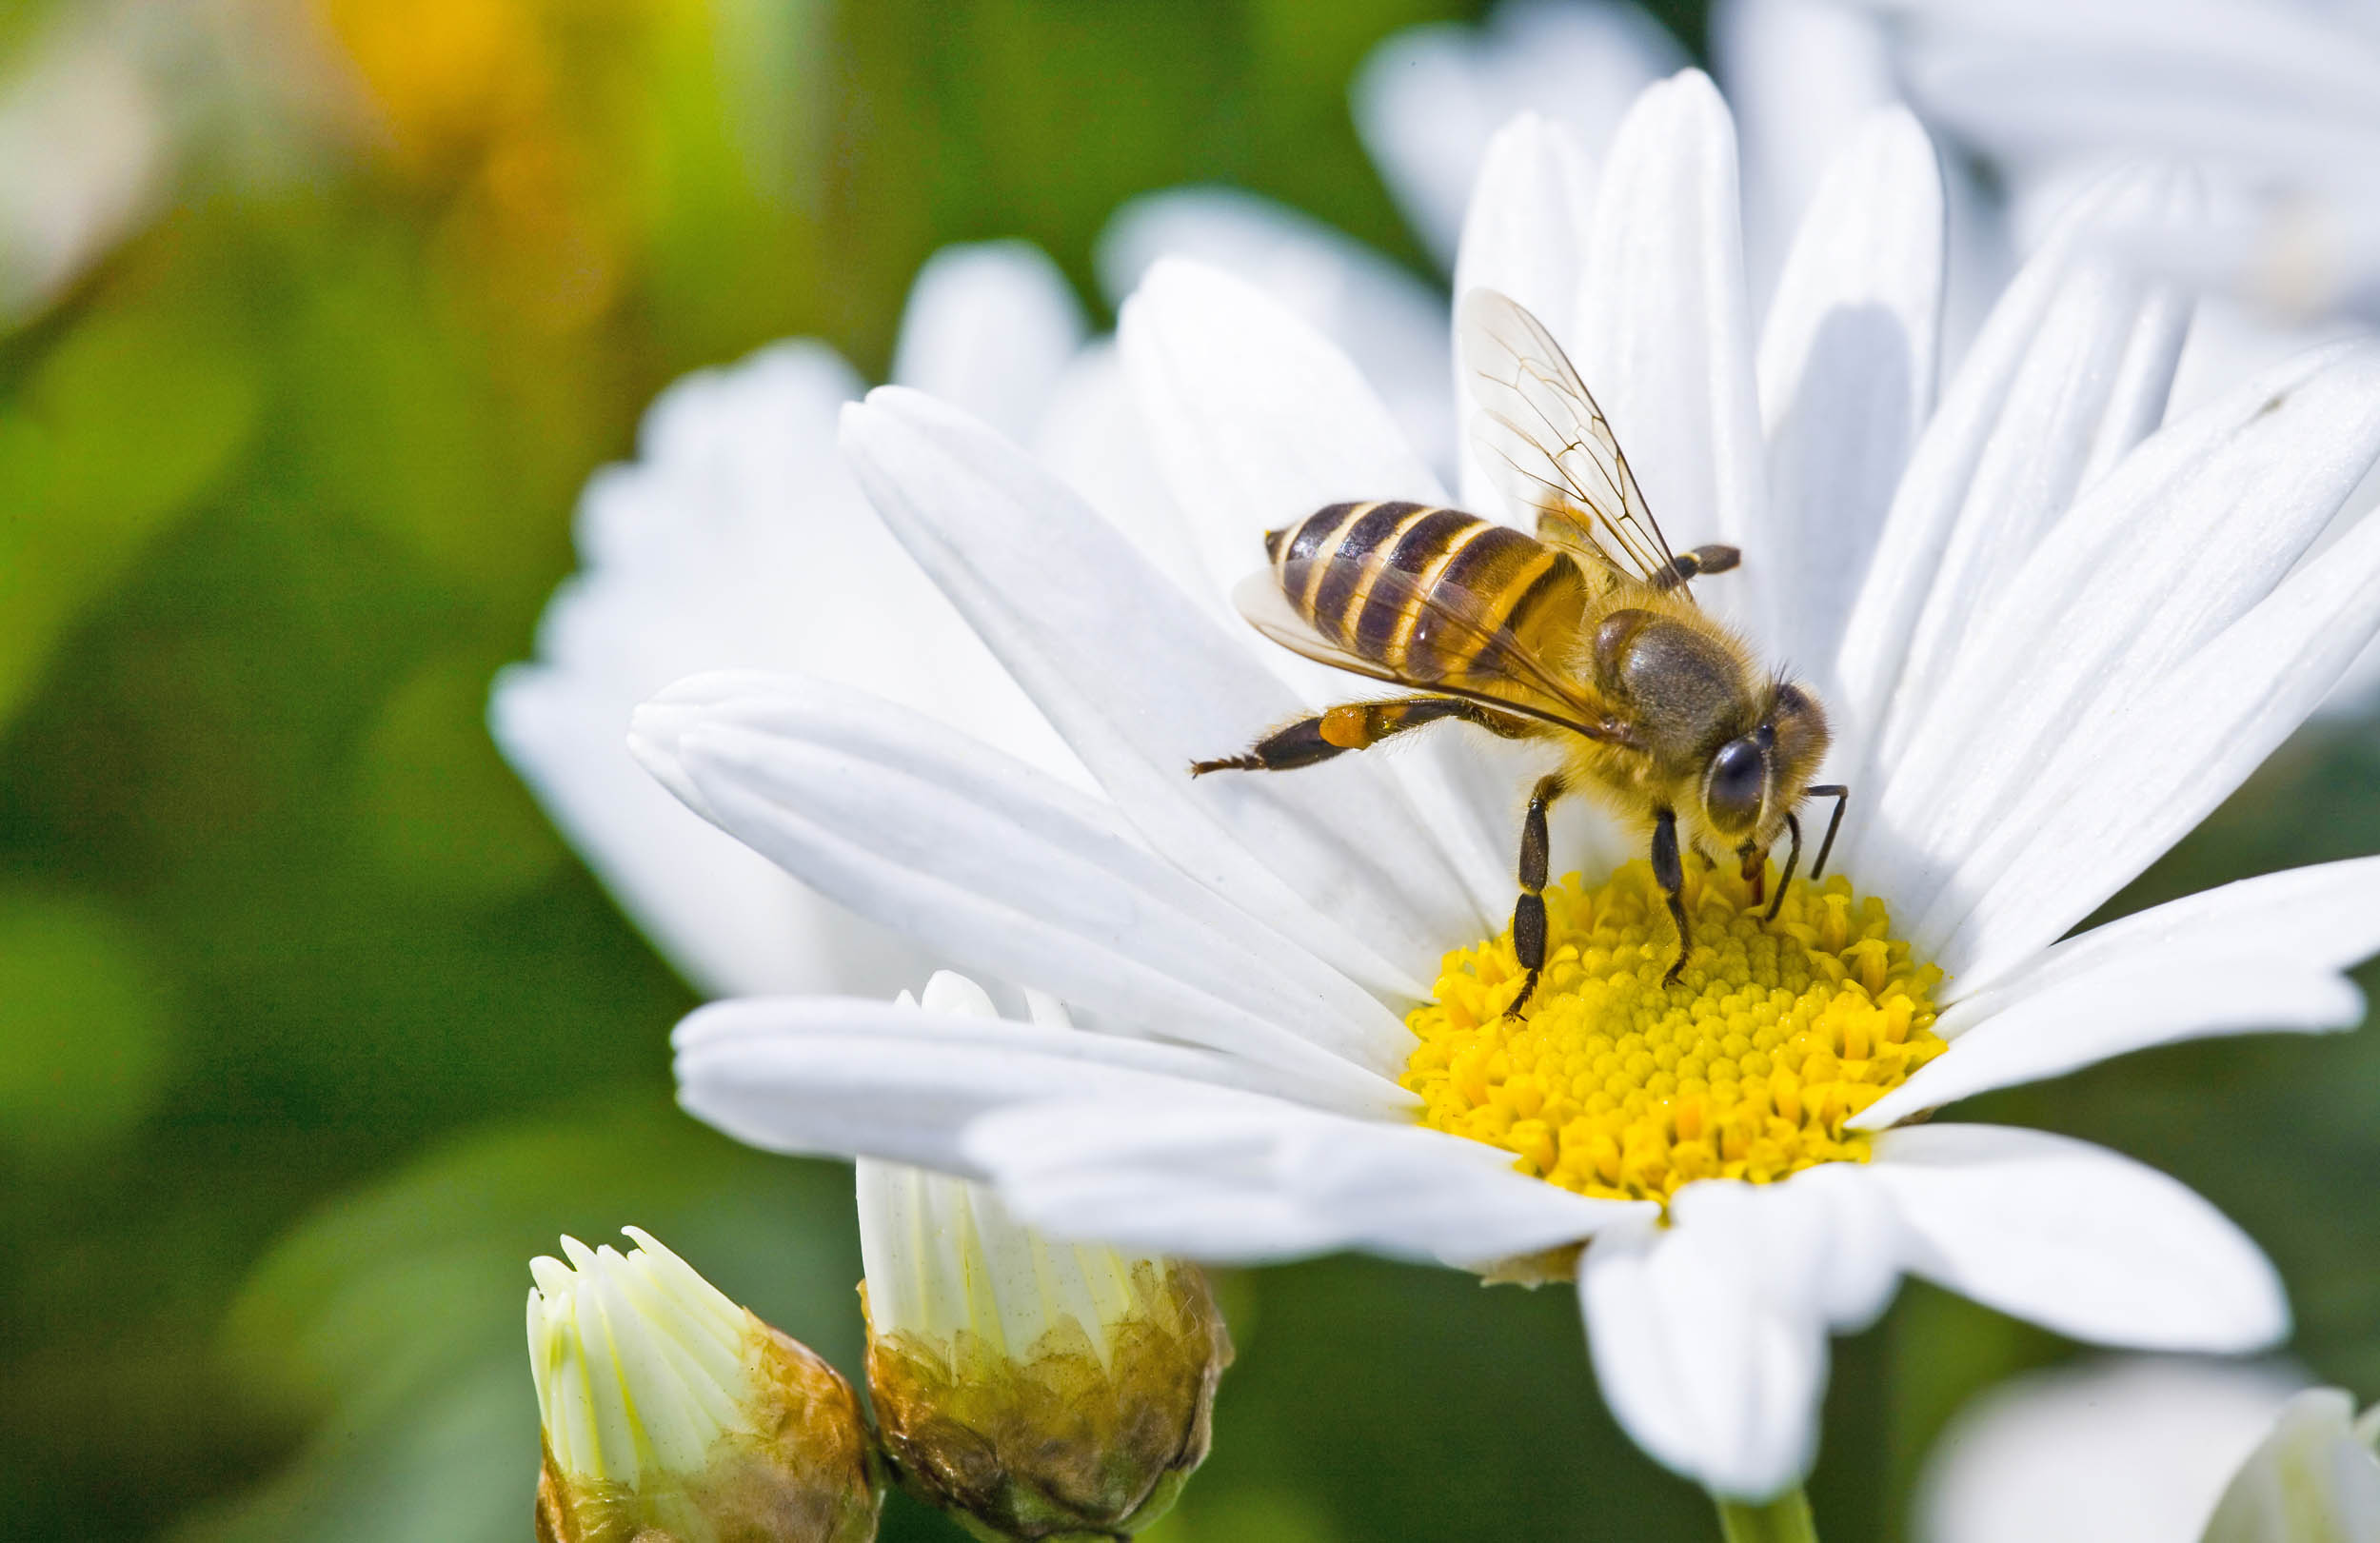 Study: Bees have emotions and good food makes them happy